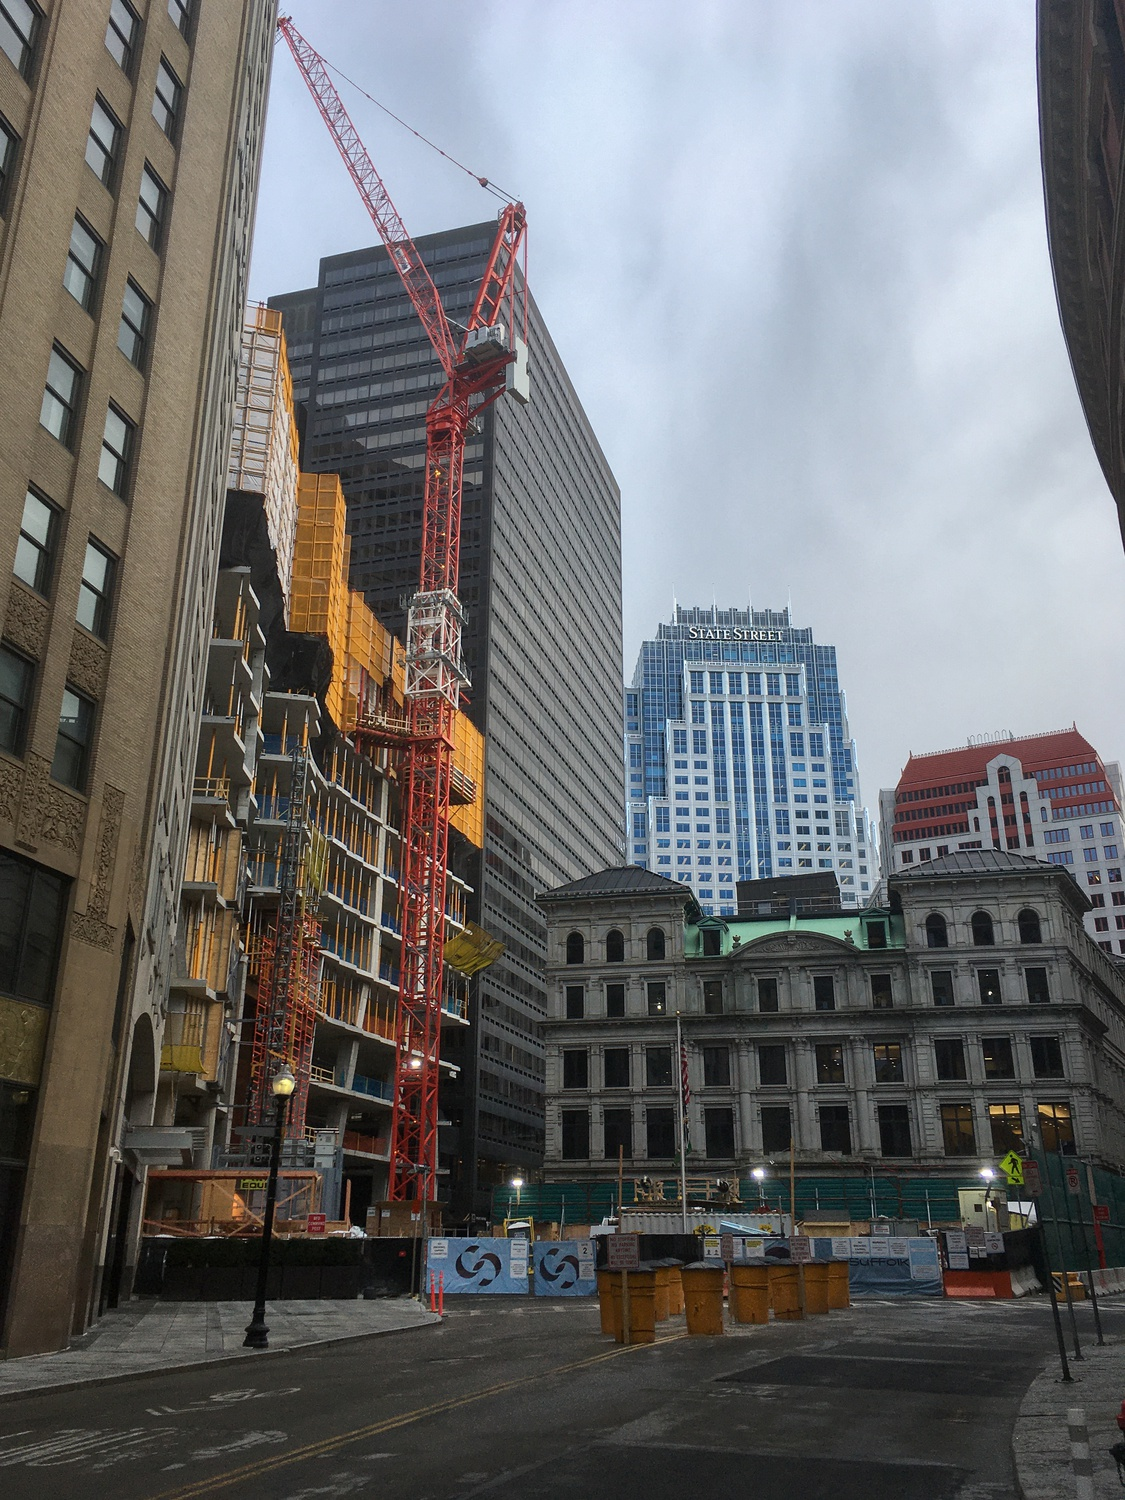 Construction continues on High Street in downtown Boston. High Street was the site of a deadly construction accident in late February, prompting outrage over the lack of safety measures for utility workers.